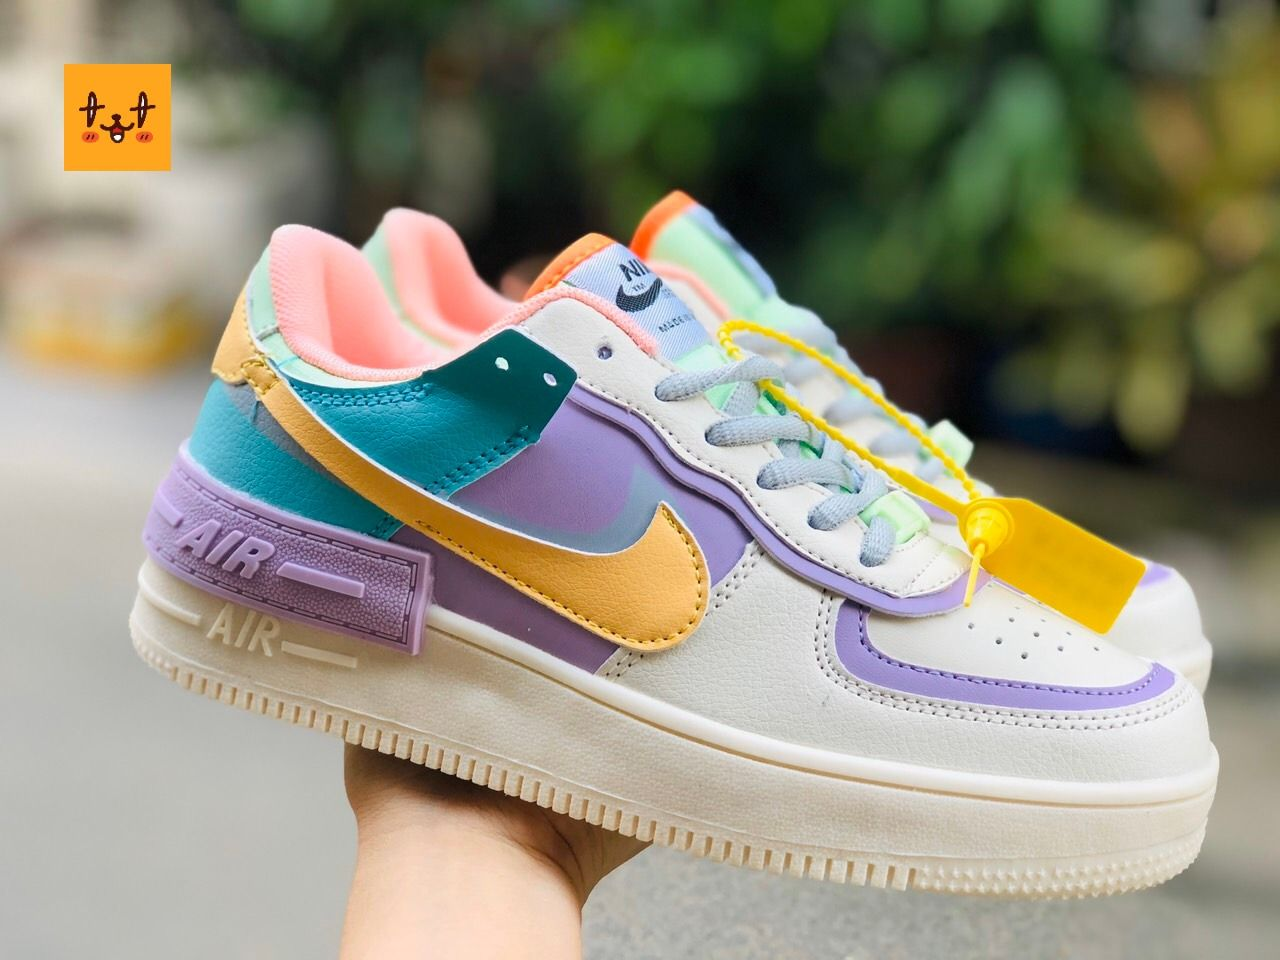 Giày thể thao sneaker nữ Nike air Force 1 Shadow | Nike air force, Nike,  Thể thao